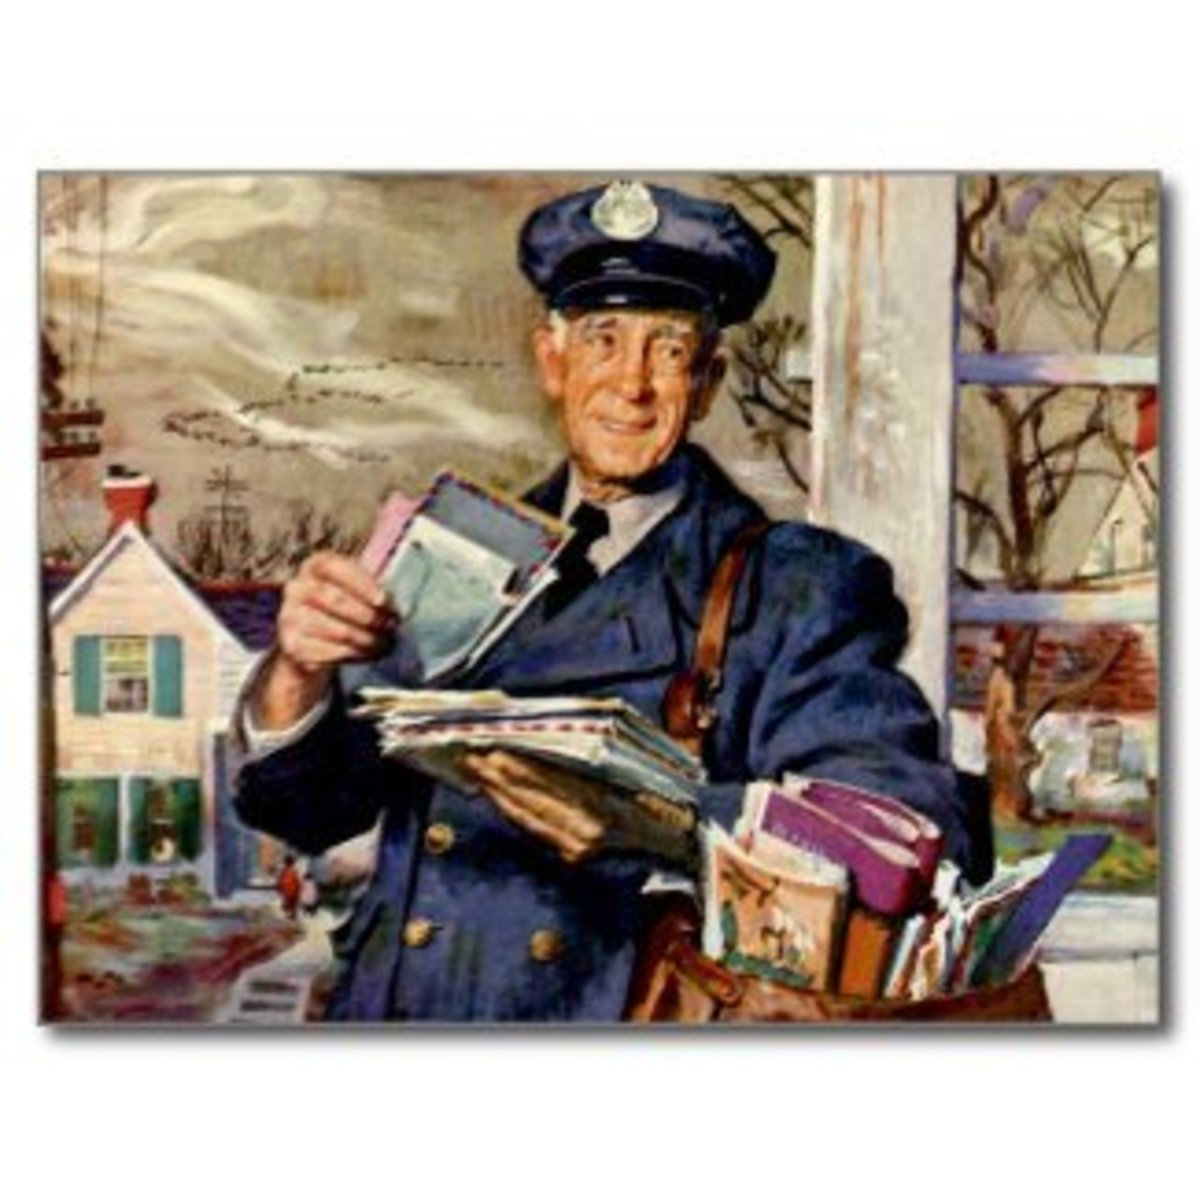 The mailman makes his rounds distributing cards and Christmas cheer.